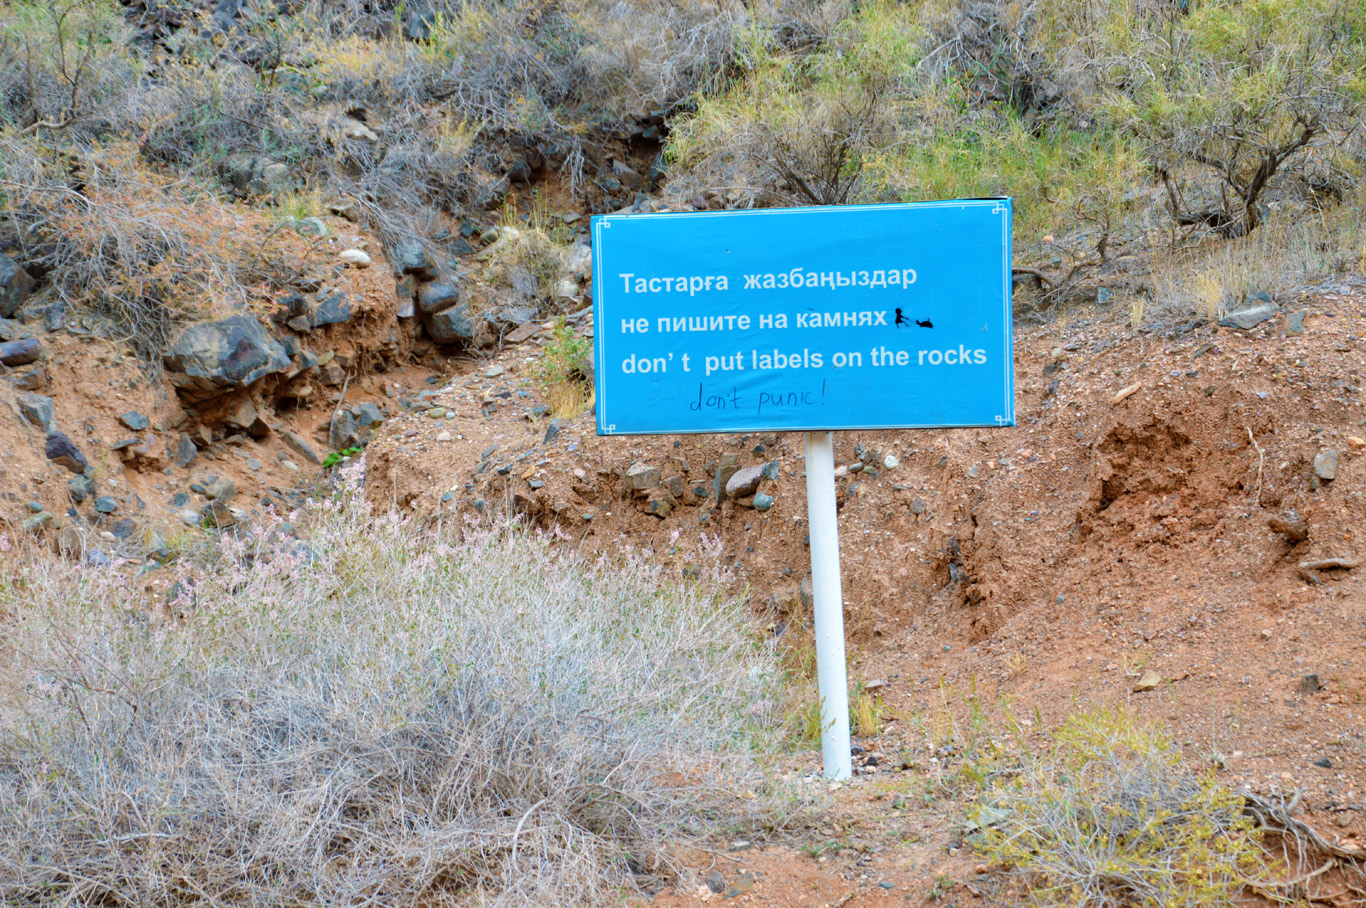 A sign at the start of the trail